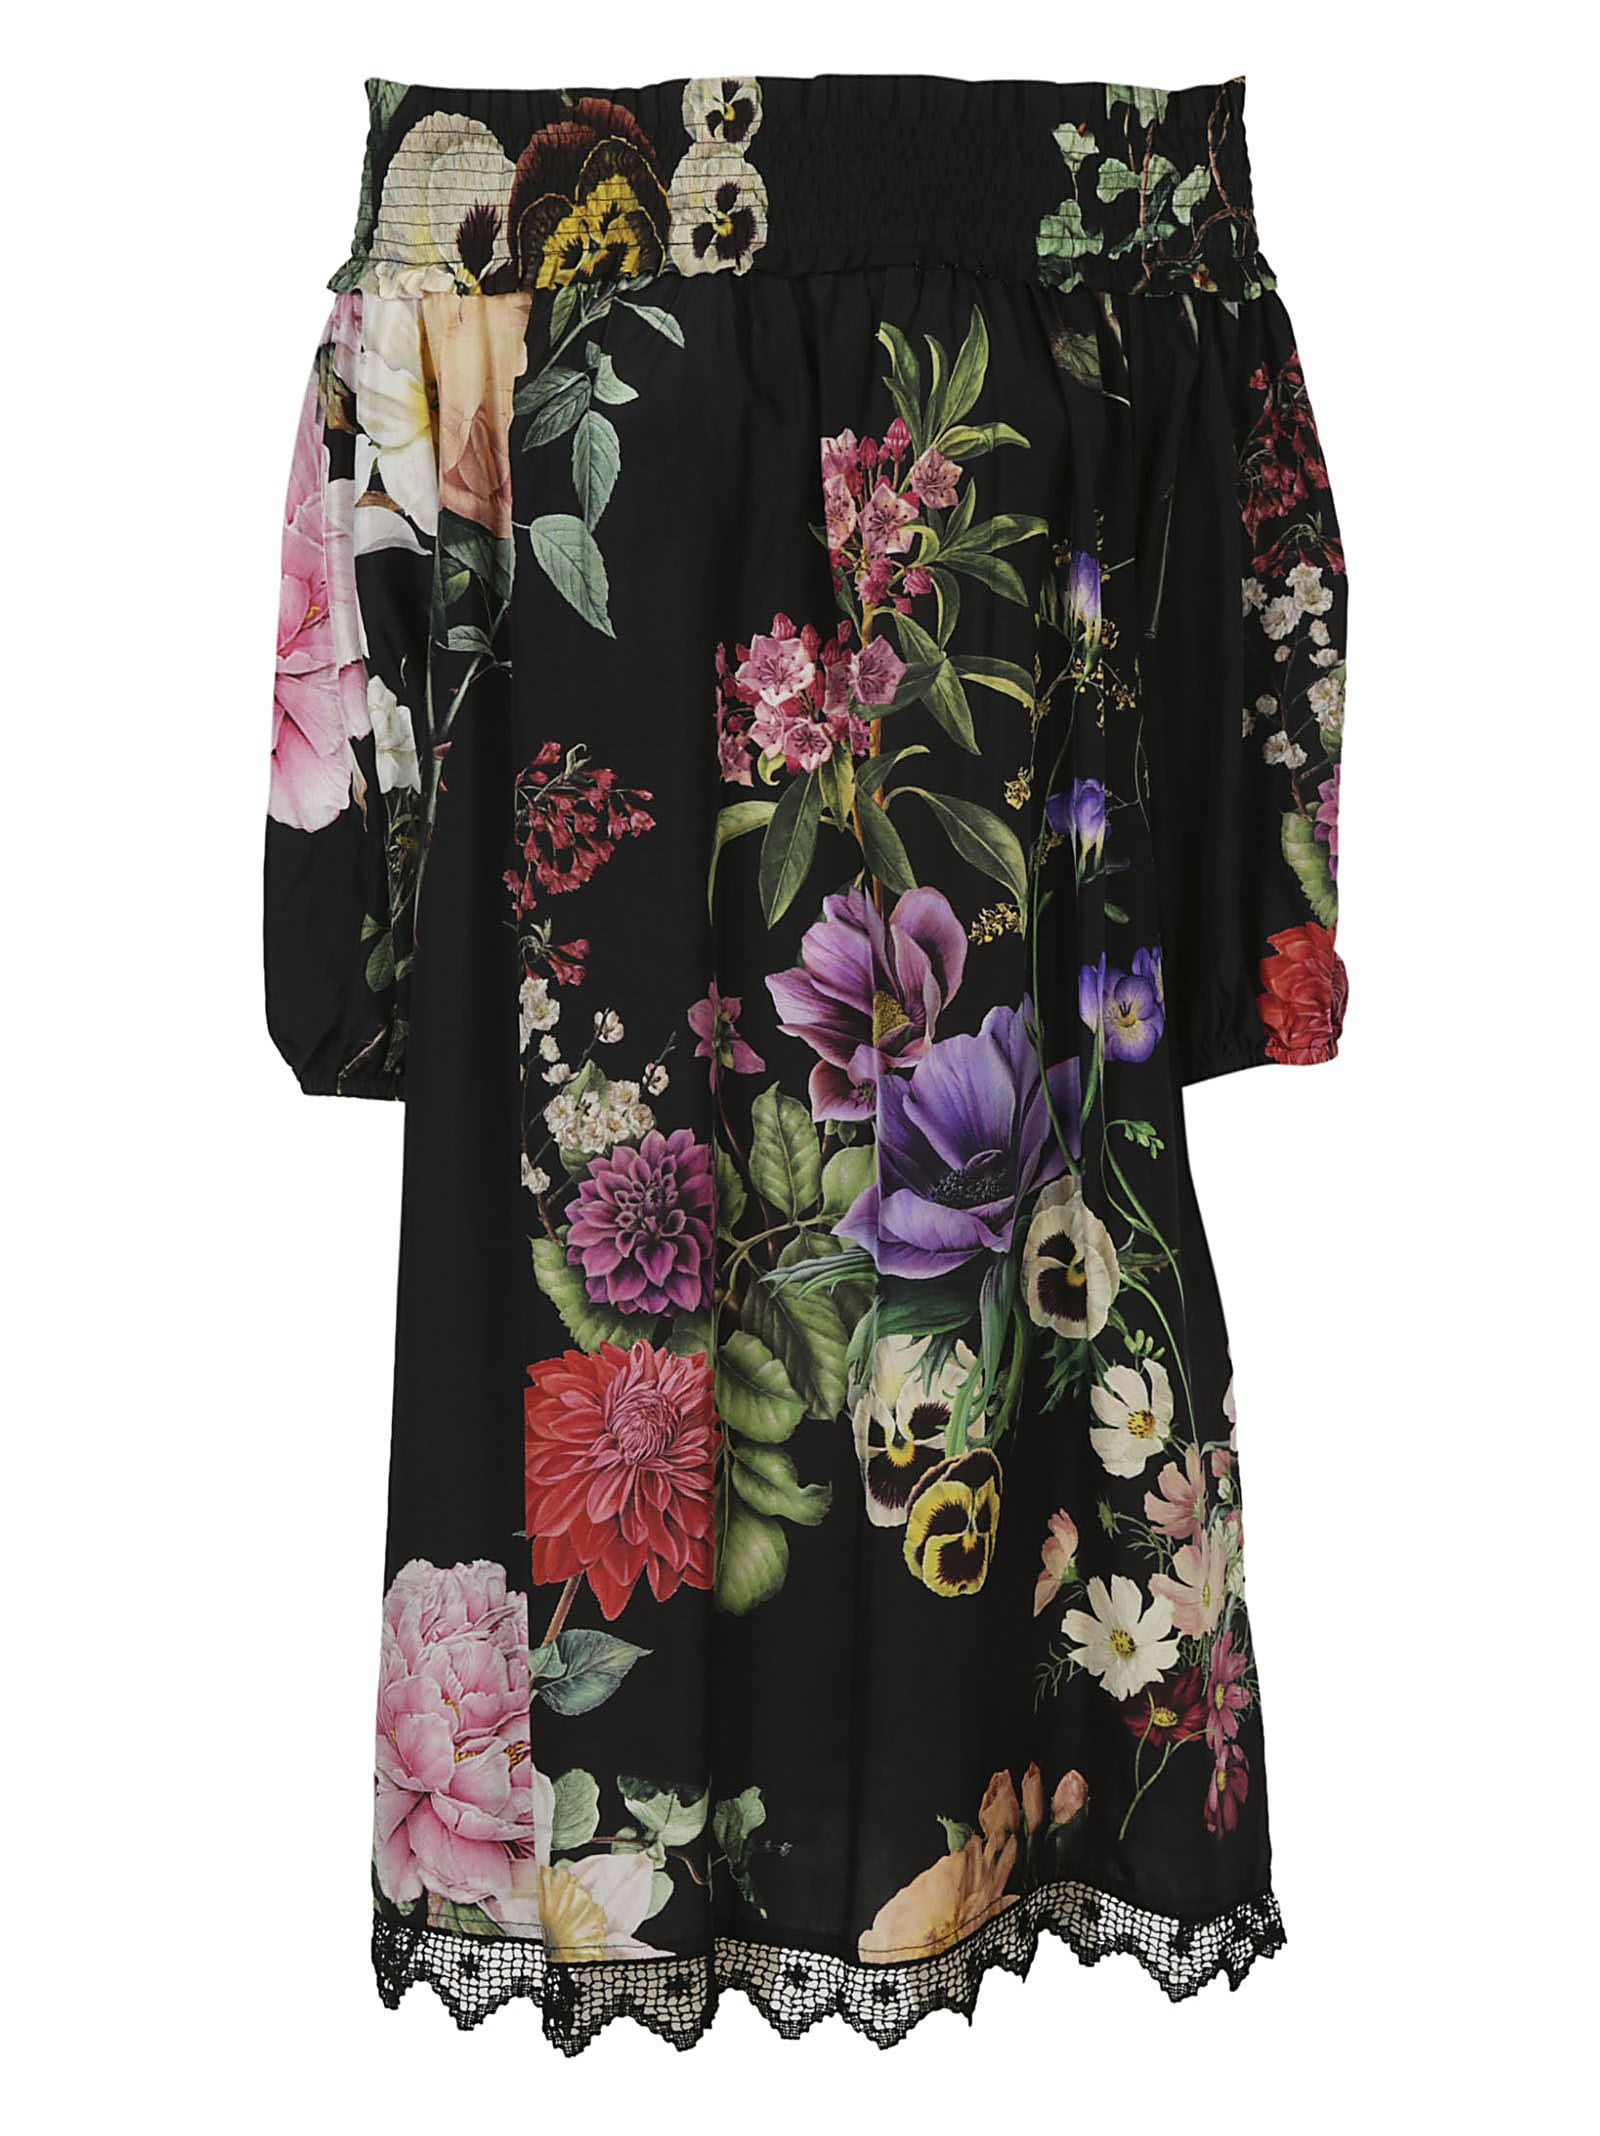 Get New floral print dress - Black P.A.R.O.S.H. Best Prices Cheap Online Sale Visit New Looking For Cheap Price cuzY9DJaBj